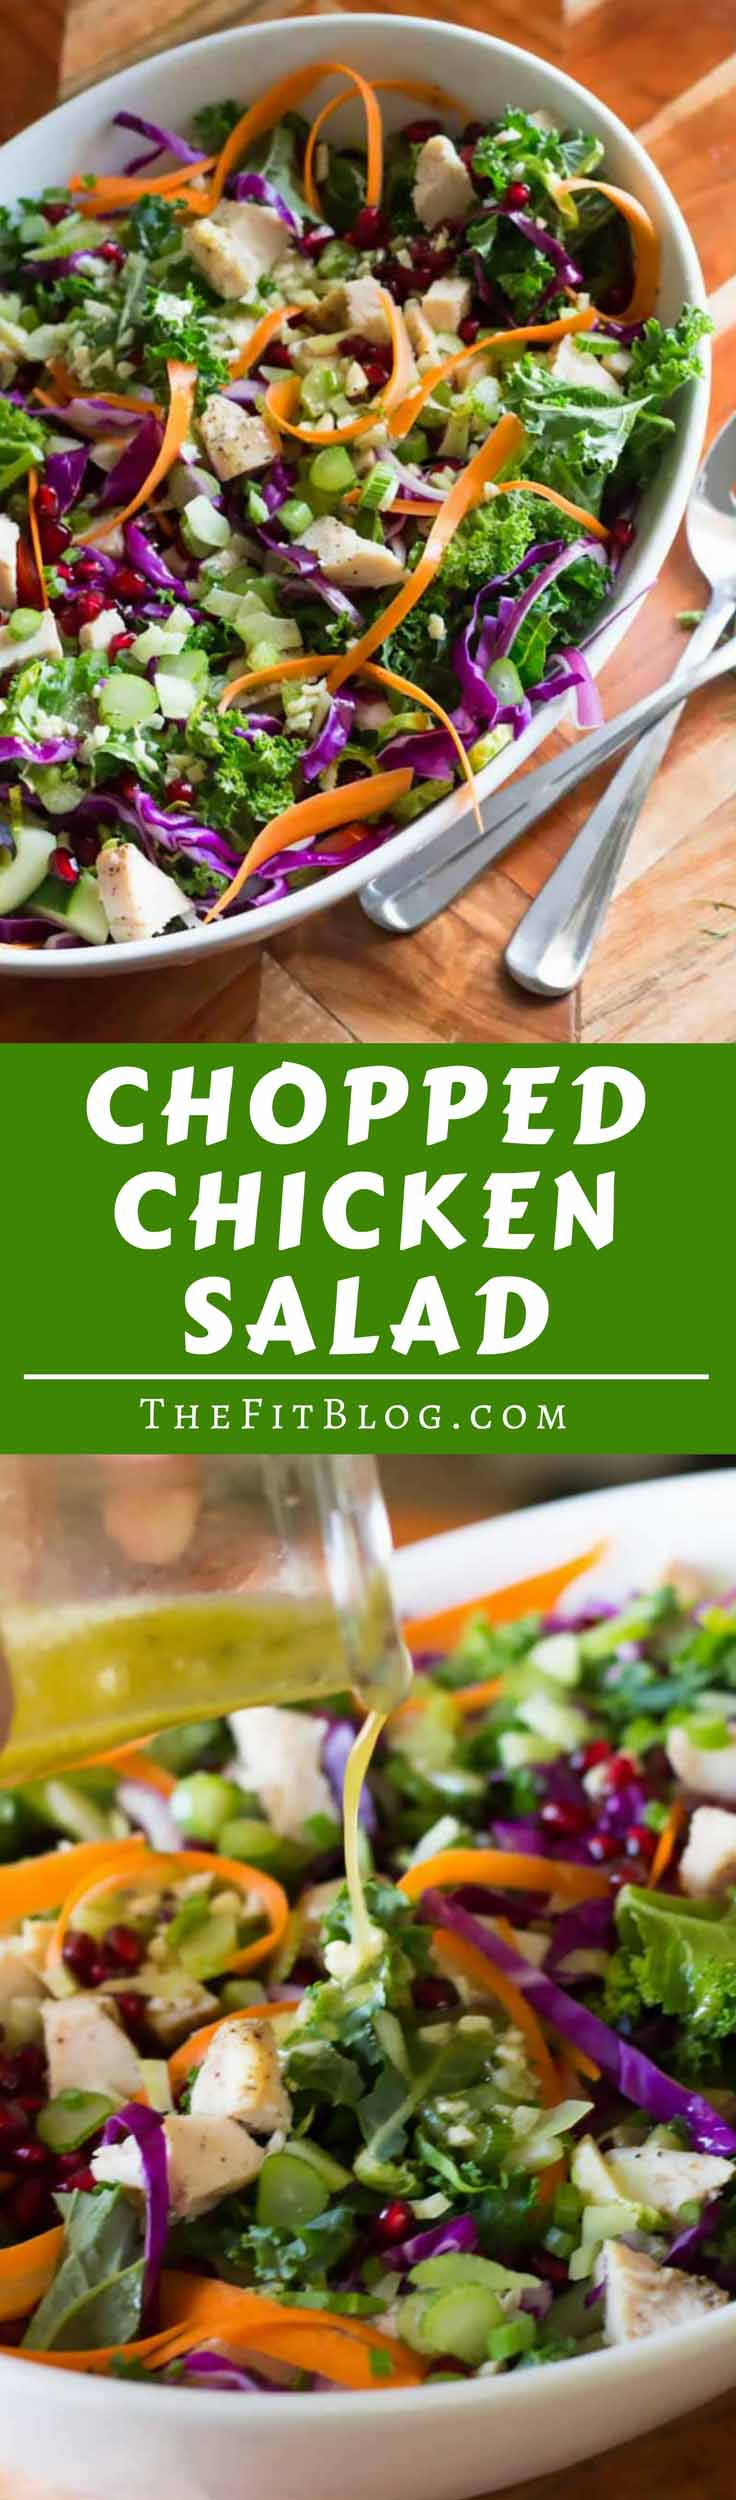 Chopped Chicken Salad utilizes seasonal fruits and vegetables and easy baked chicken to create a hearty, colorful, protein-packed salad! |diabetesstrong.com